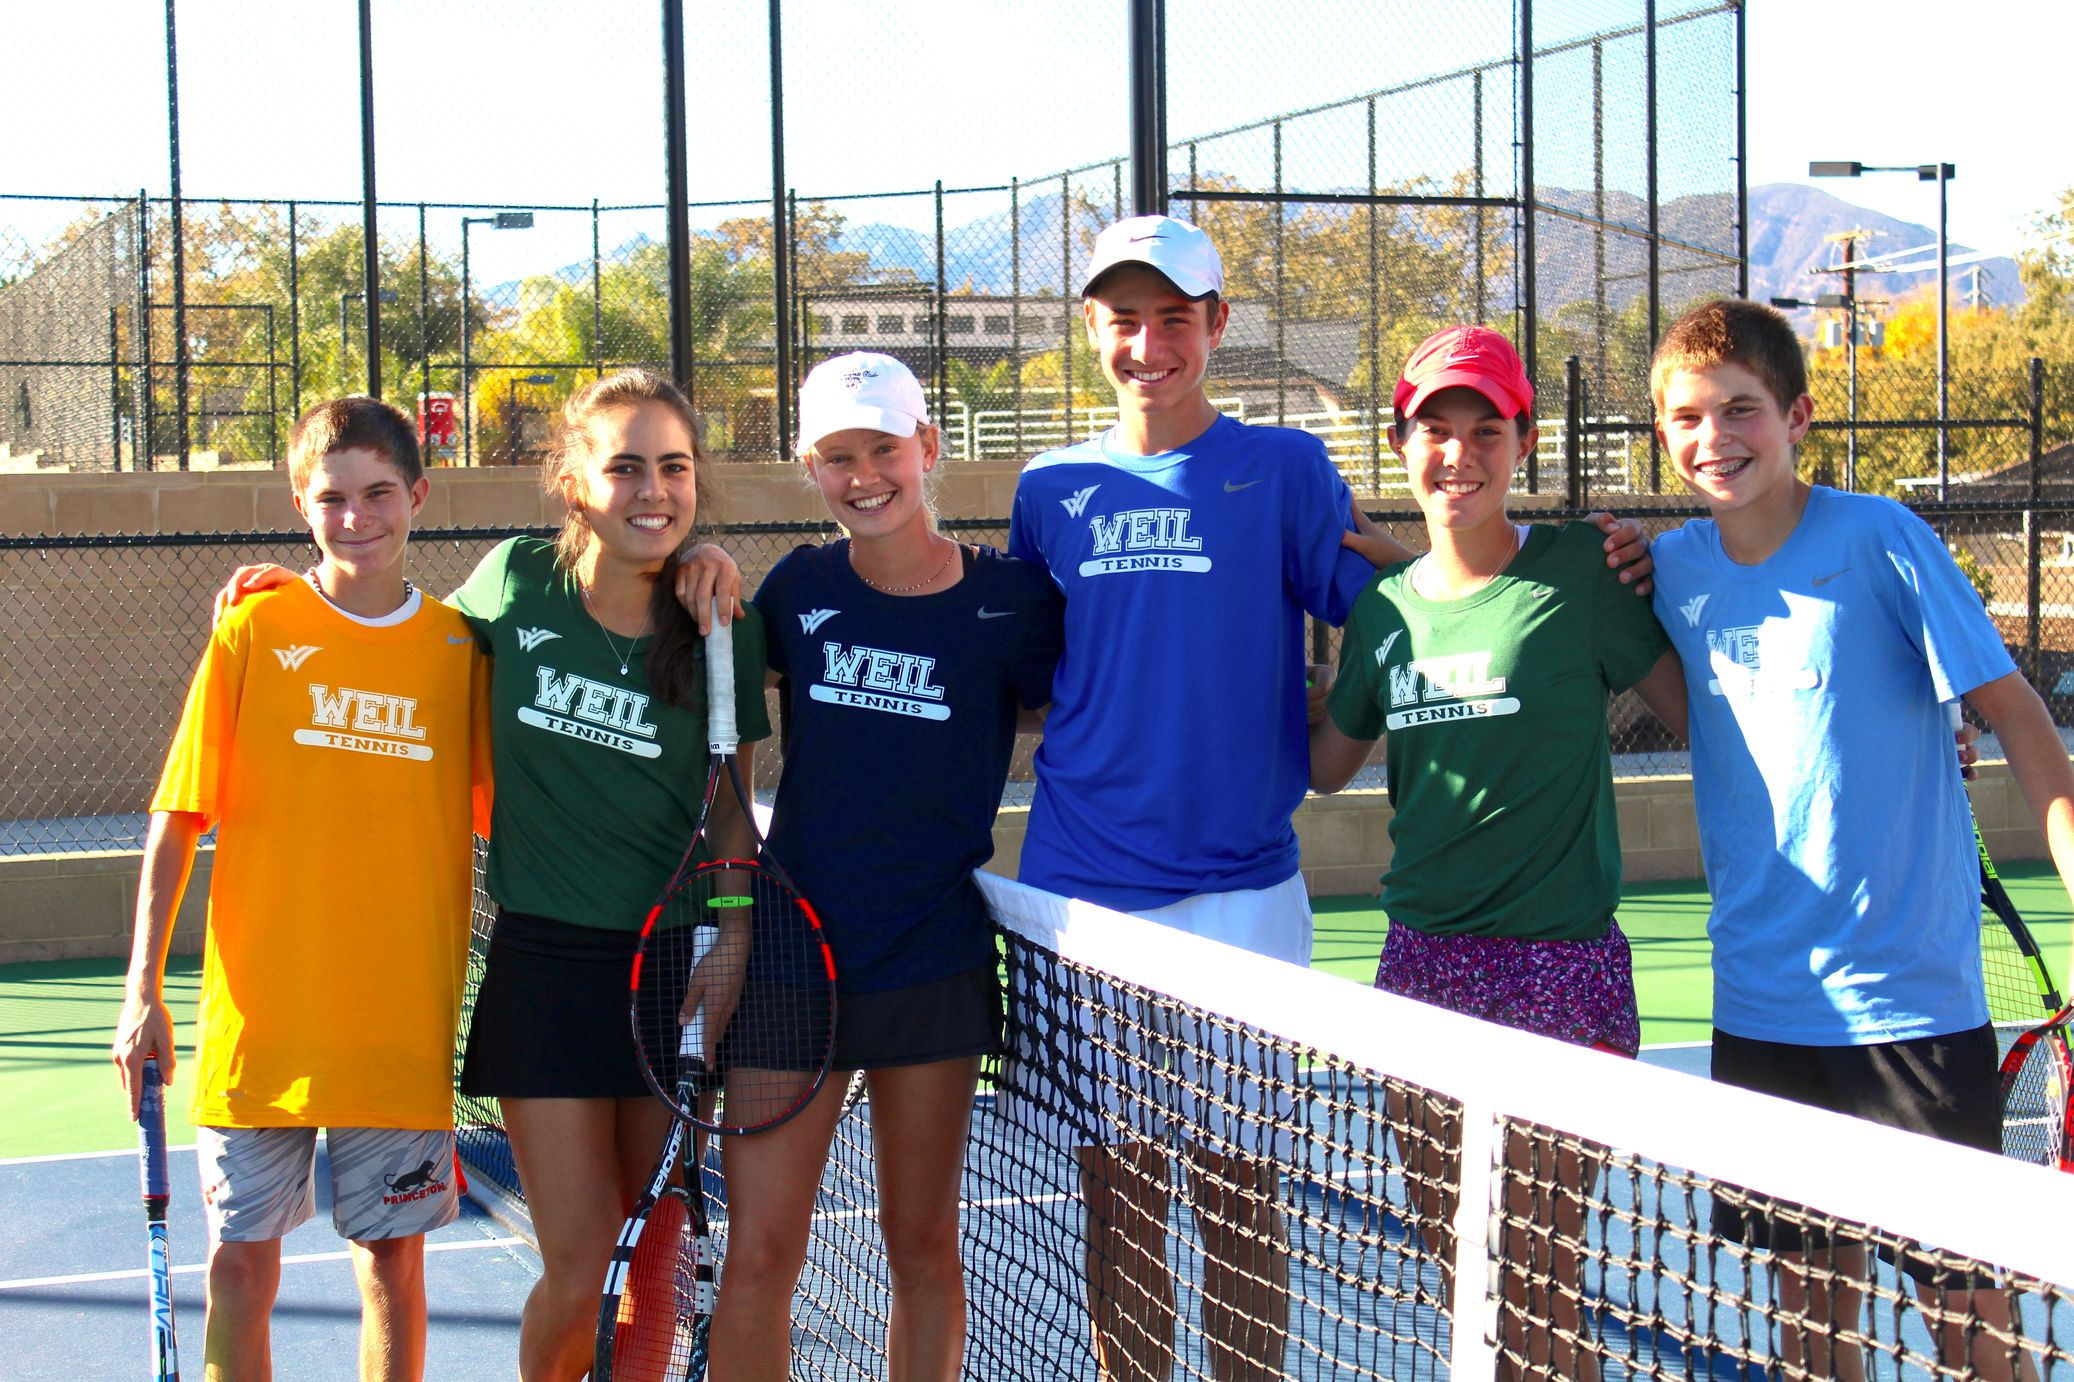 Weil Academy student athletes enjoy the Southern California lifestyle on and off the court, they become friends and learn to compete as members of the same team as they travel to tourna-ments every weekend. Here five Weil students from three states Mexico and Brazil have fun on the tennis courts in Ojai CA at Weil Academy near Los Angeles and San Diego.